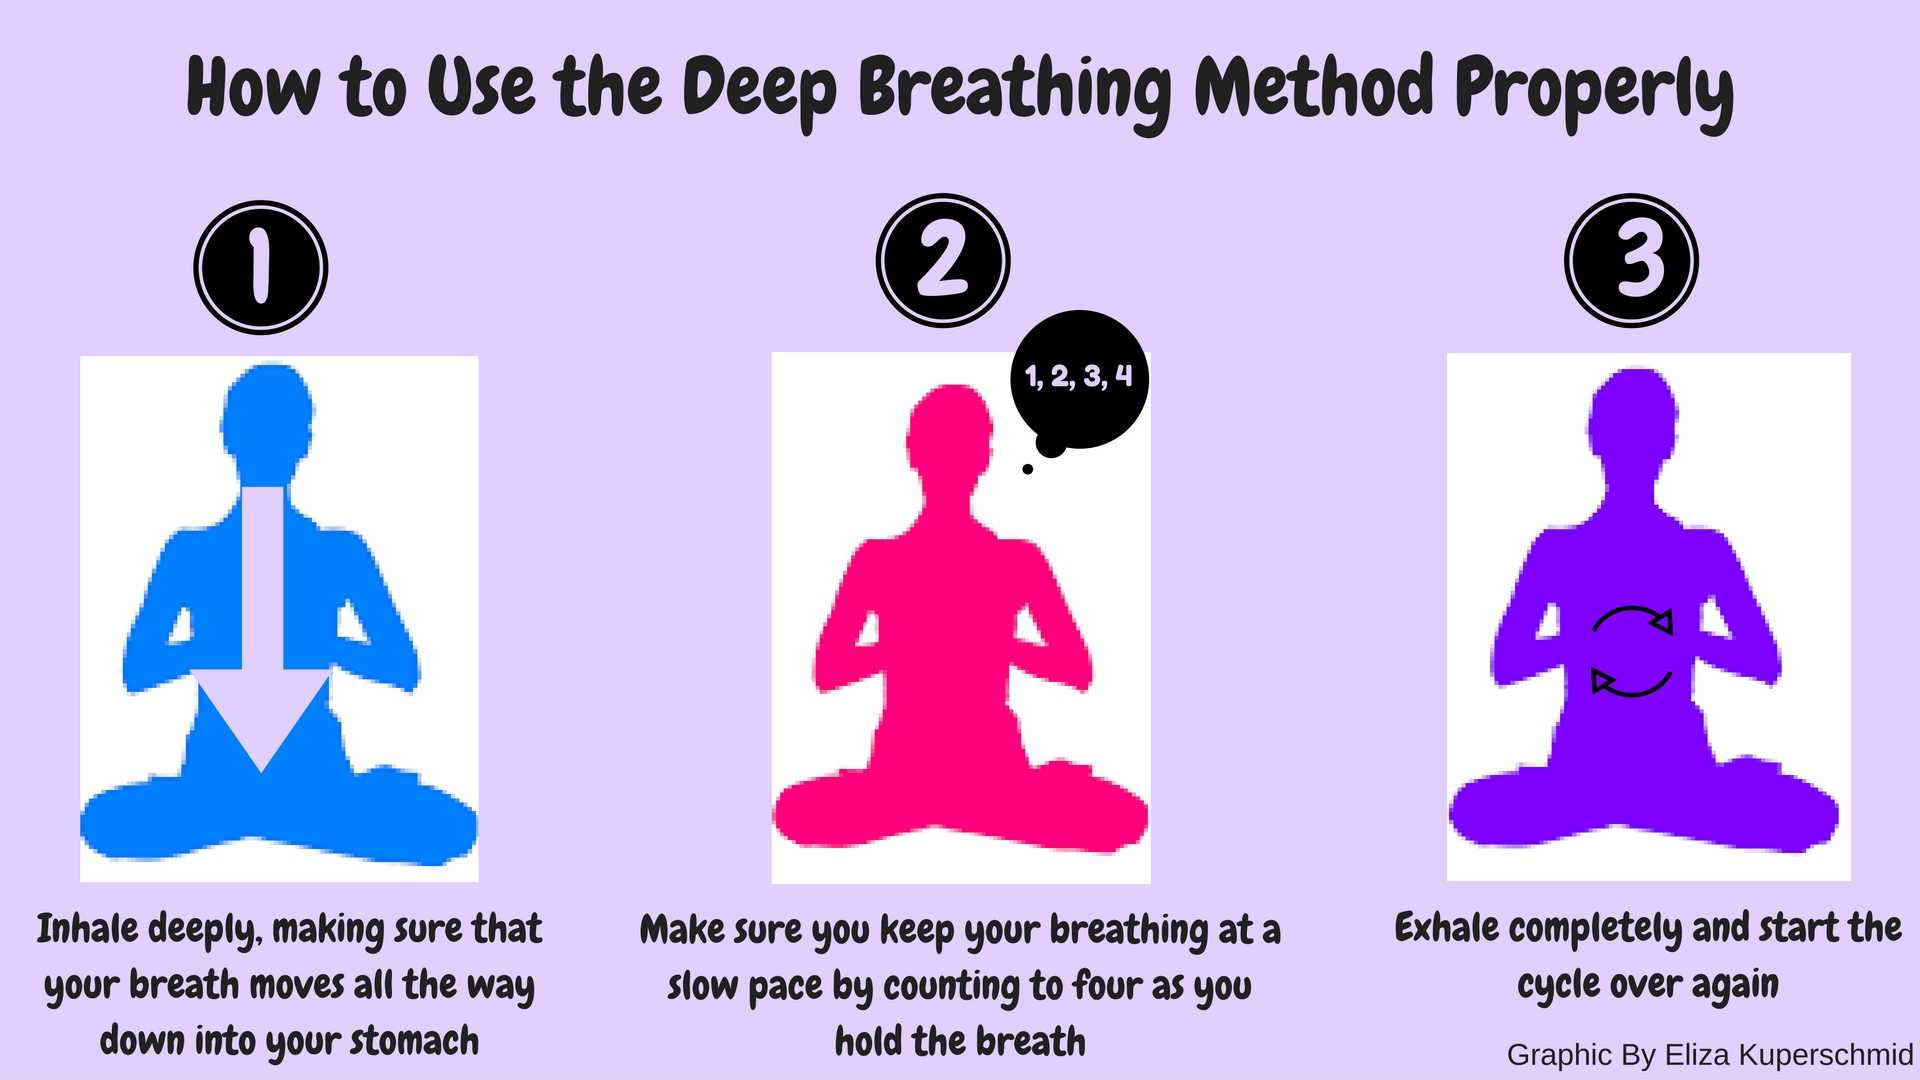 A handy visual that shows you how to deep breathe properly. You can use this method any time, any day, and any place.